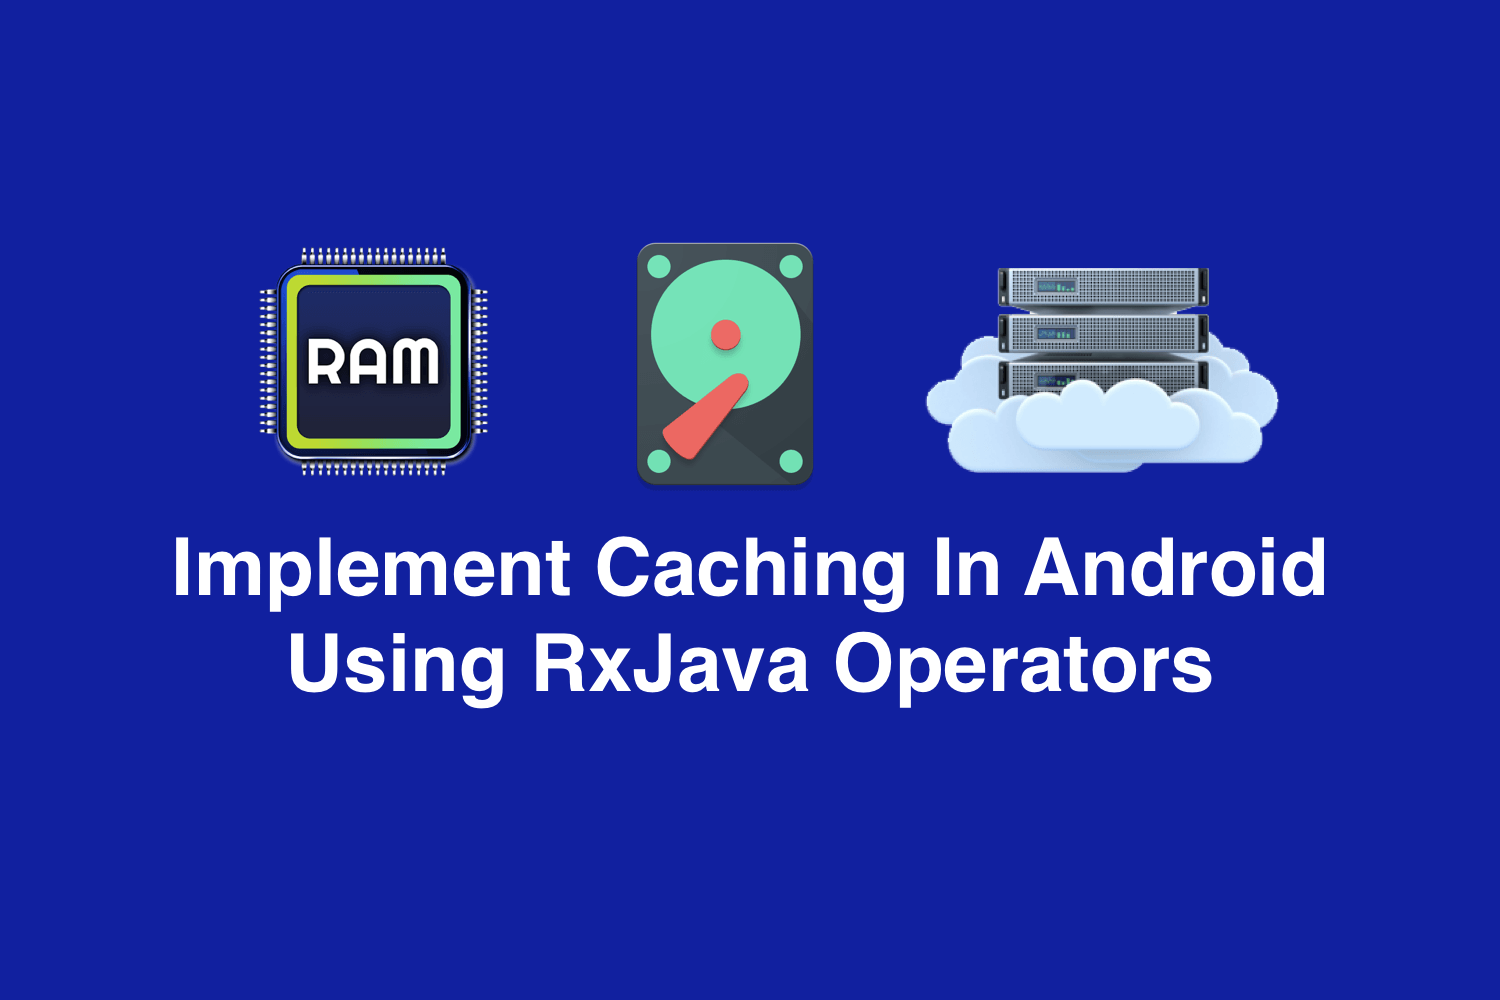 Implement Caching In Android Using RxJava Operators